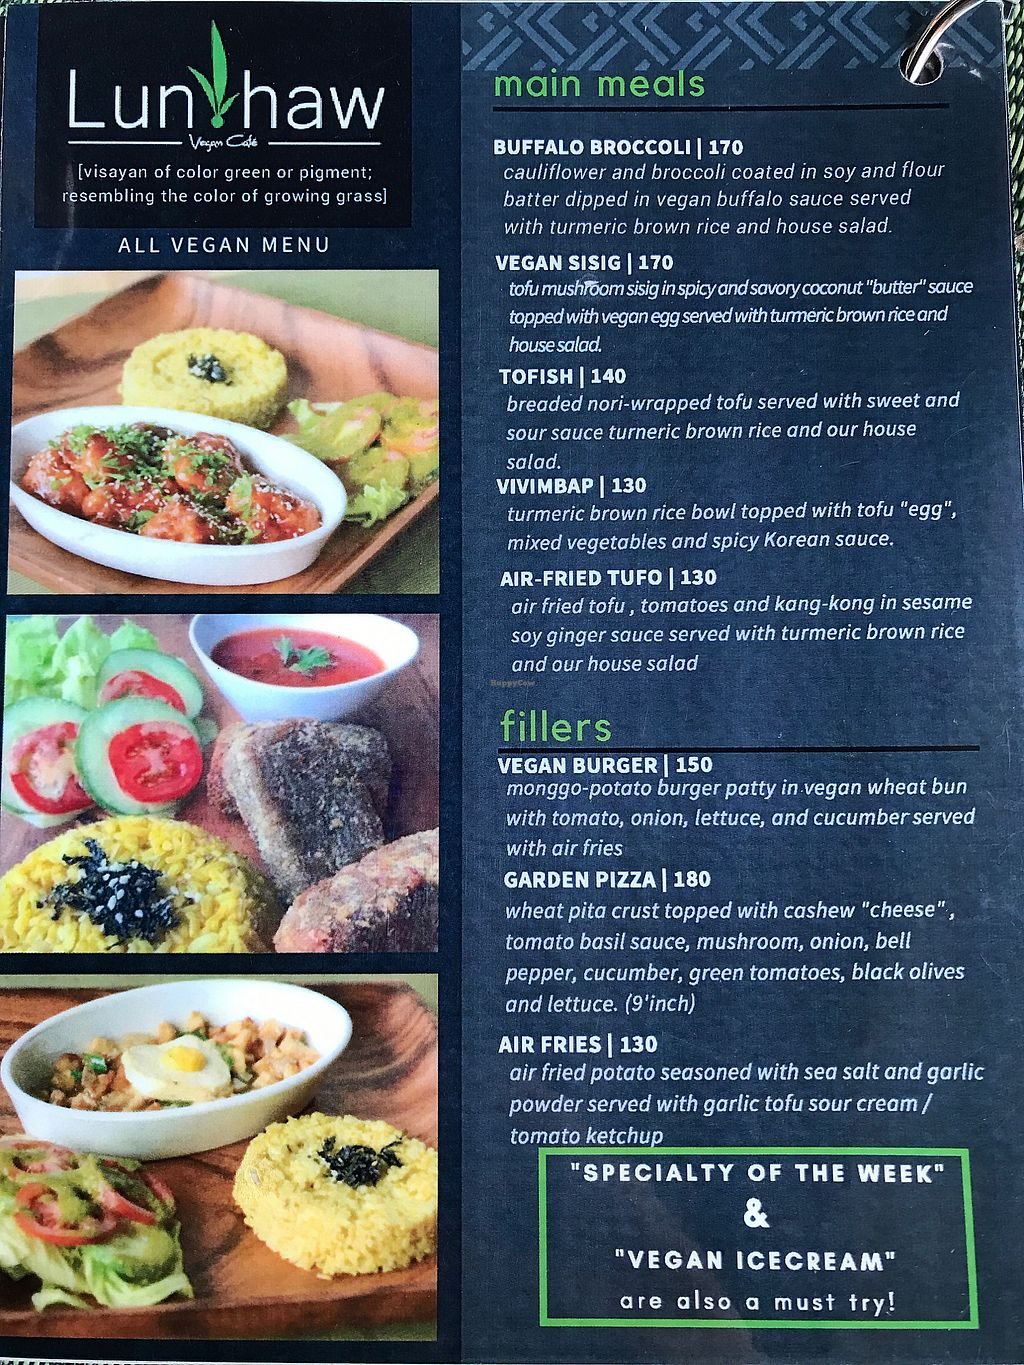 """Photo of Lun-Haw Vegan Cafe  by <a href=""""/members/profile/CharlieDrew"""">CharlieDrew</a> <br/>Menu Page 1  <br/> February 18, 2018  - <a href='/contact/abuse/image/86953/360755'>Report</a>"""